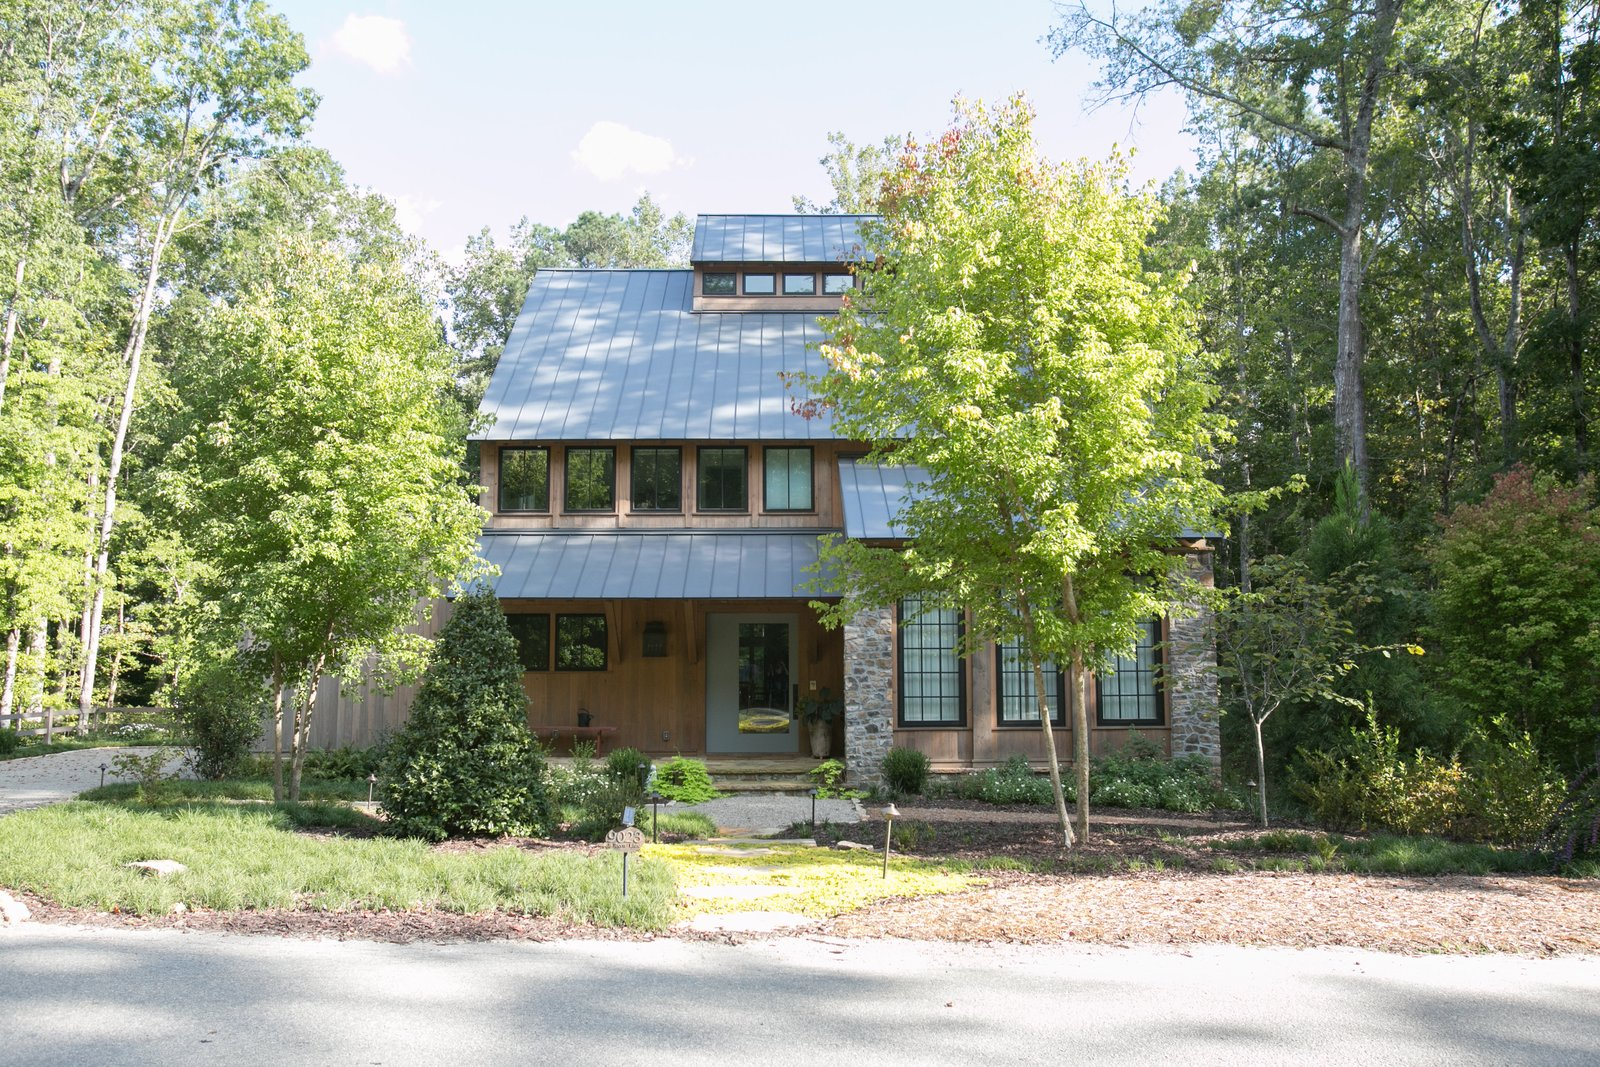 Single-family homes range in size and style to appeal to a variety of residents.  Photo 5 of 11 in An Eco-Friendly Community Outside of Atlanta Celebrates Nature and Sustainability